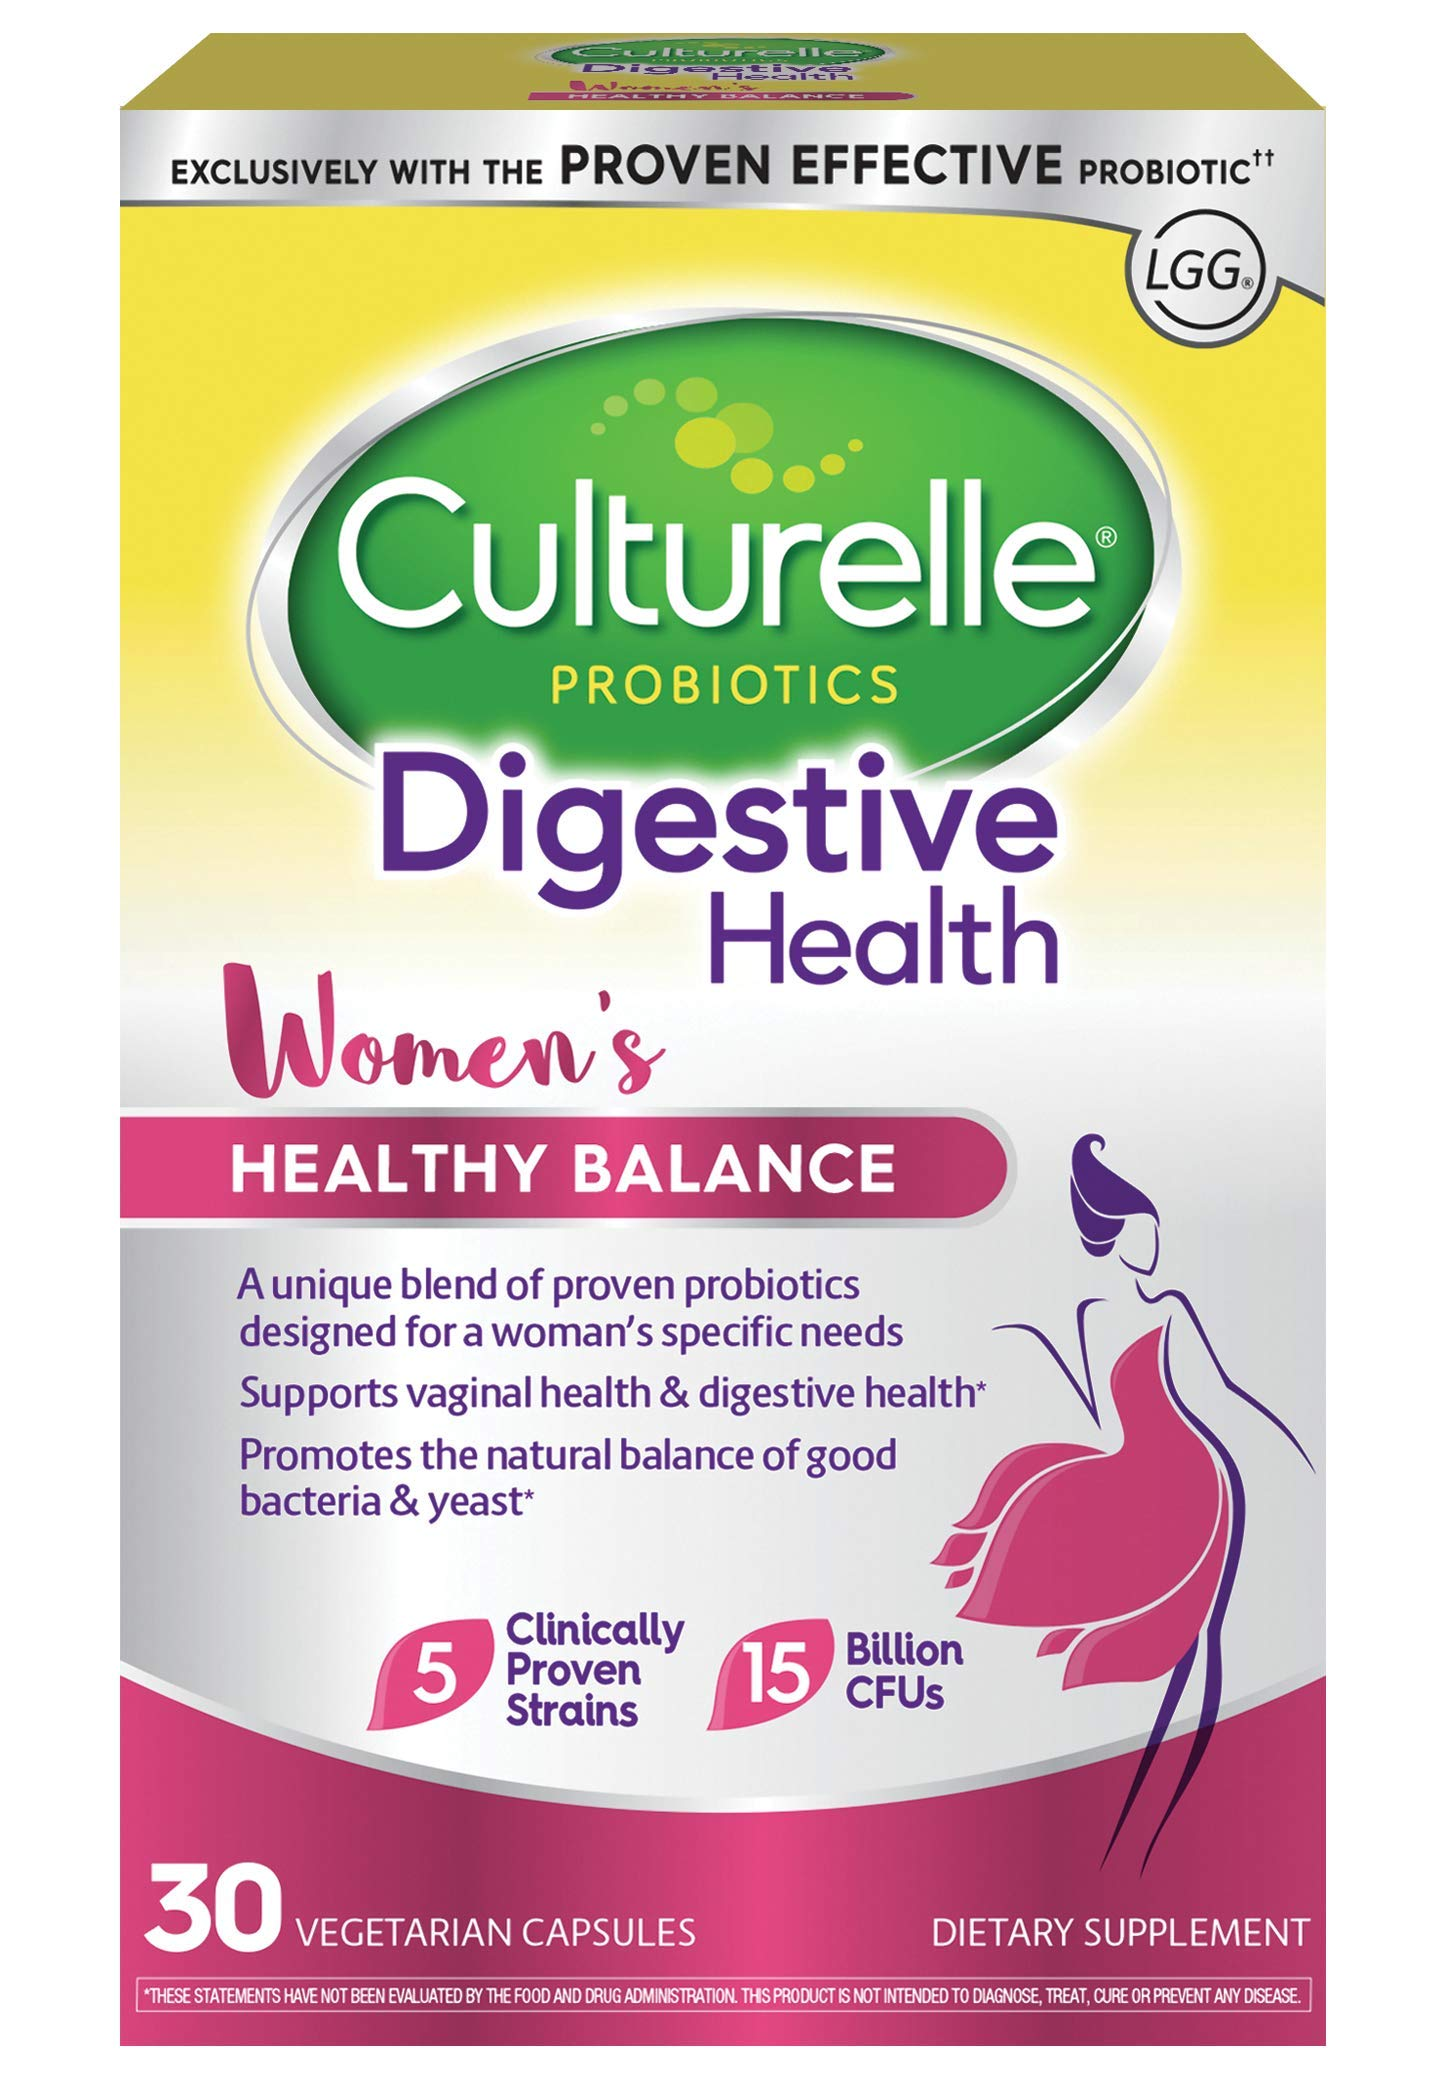 Culturelle Women's Healthy Balance Probiotic for Women | 30 Count | with Probiotic Strains to Support Digestive, Immune and Vaginal Health* | with The Proven Effective Probiotic | Packaging May Vary by Culturelle